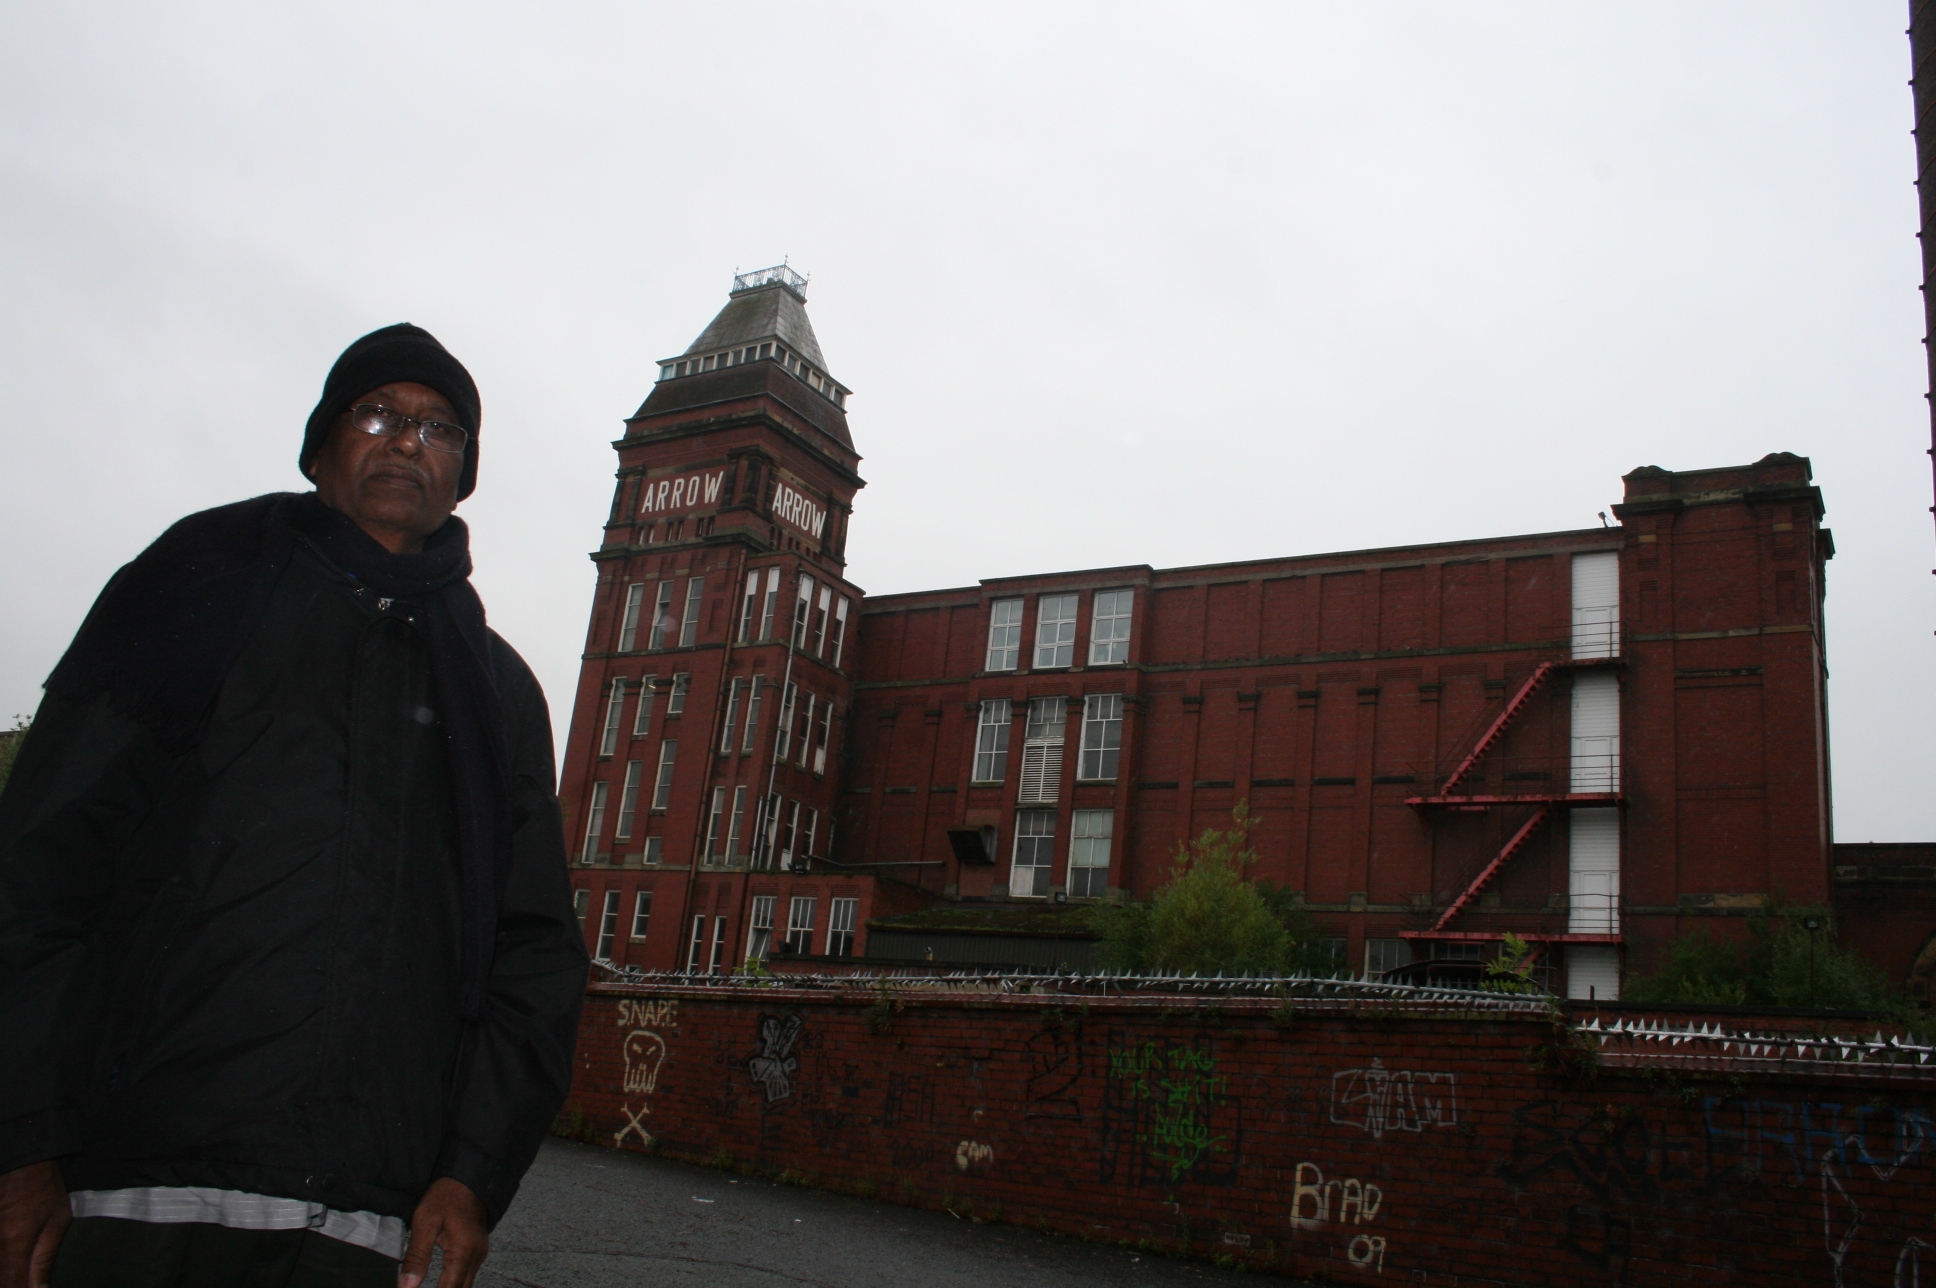 A former employee stands besides his old working place in Rochdale